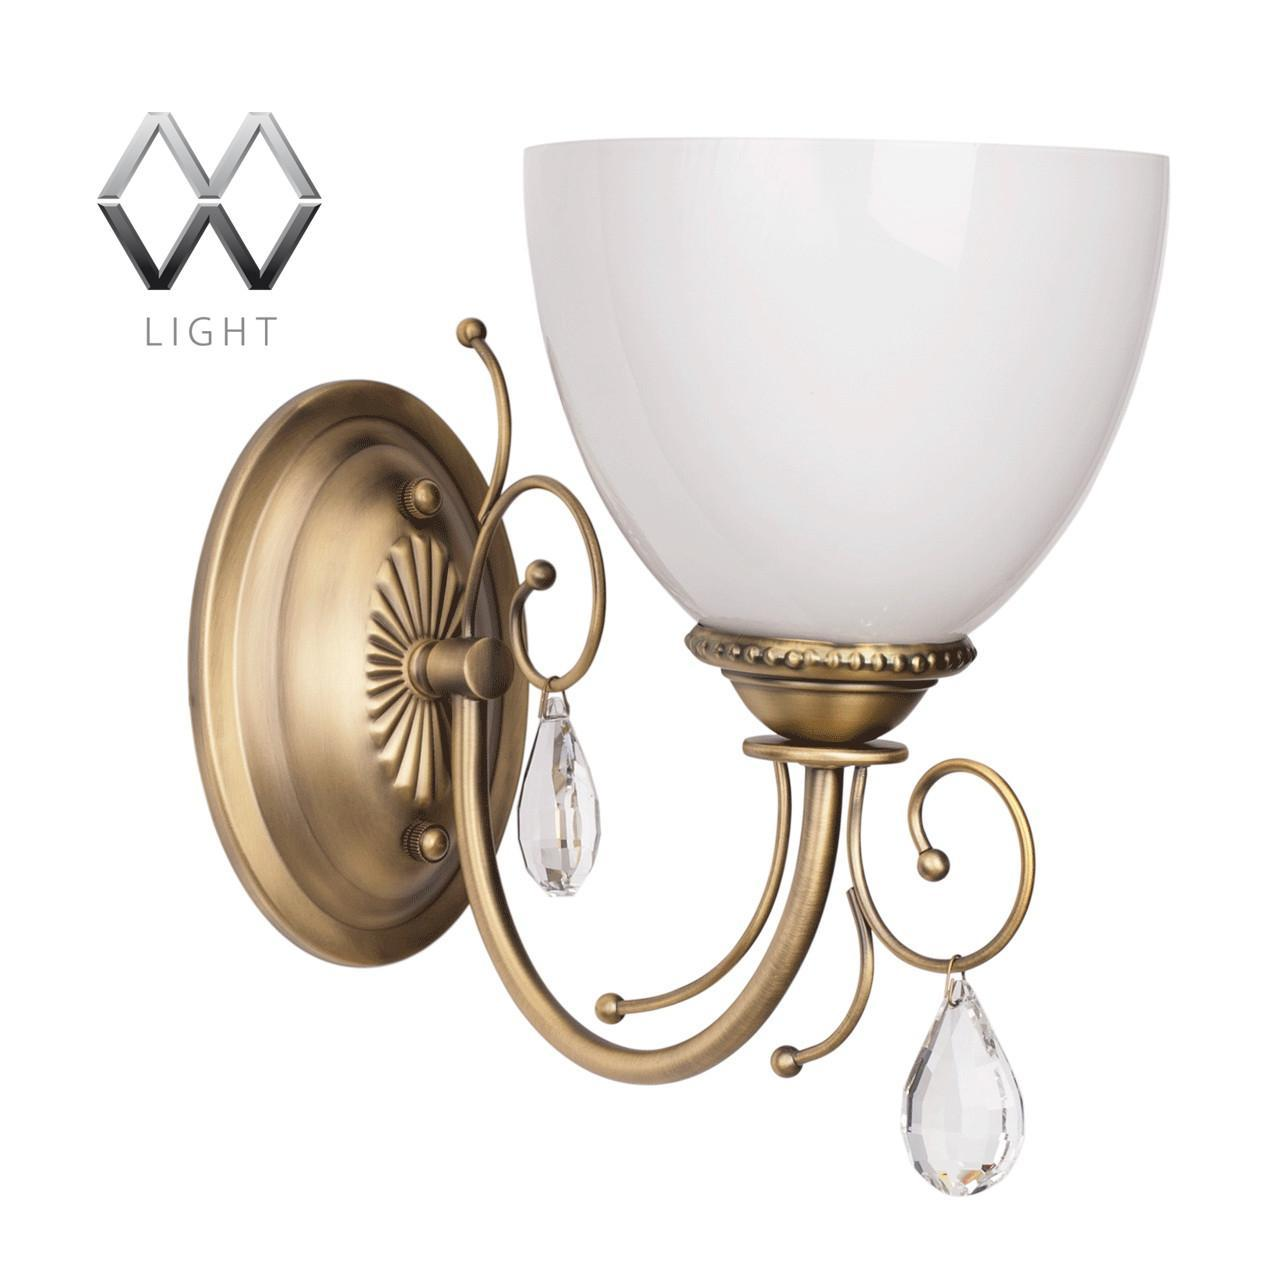 Бра MW-Light Фелиция 347026501 бра mw light фелиция 347020801